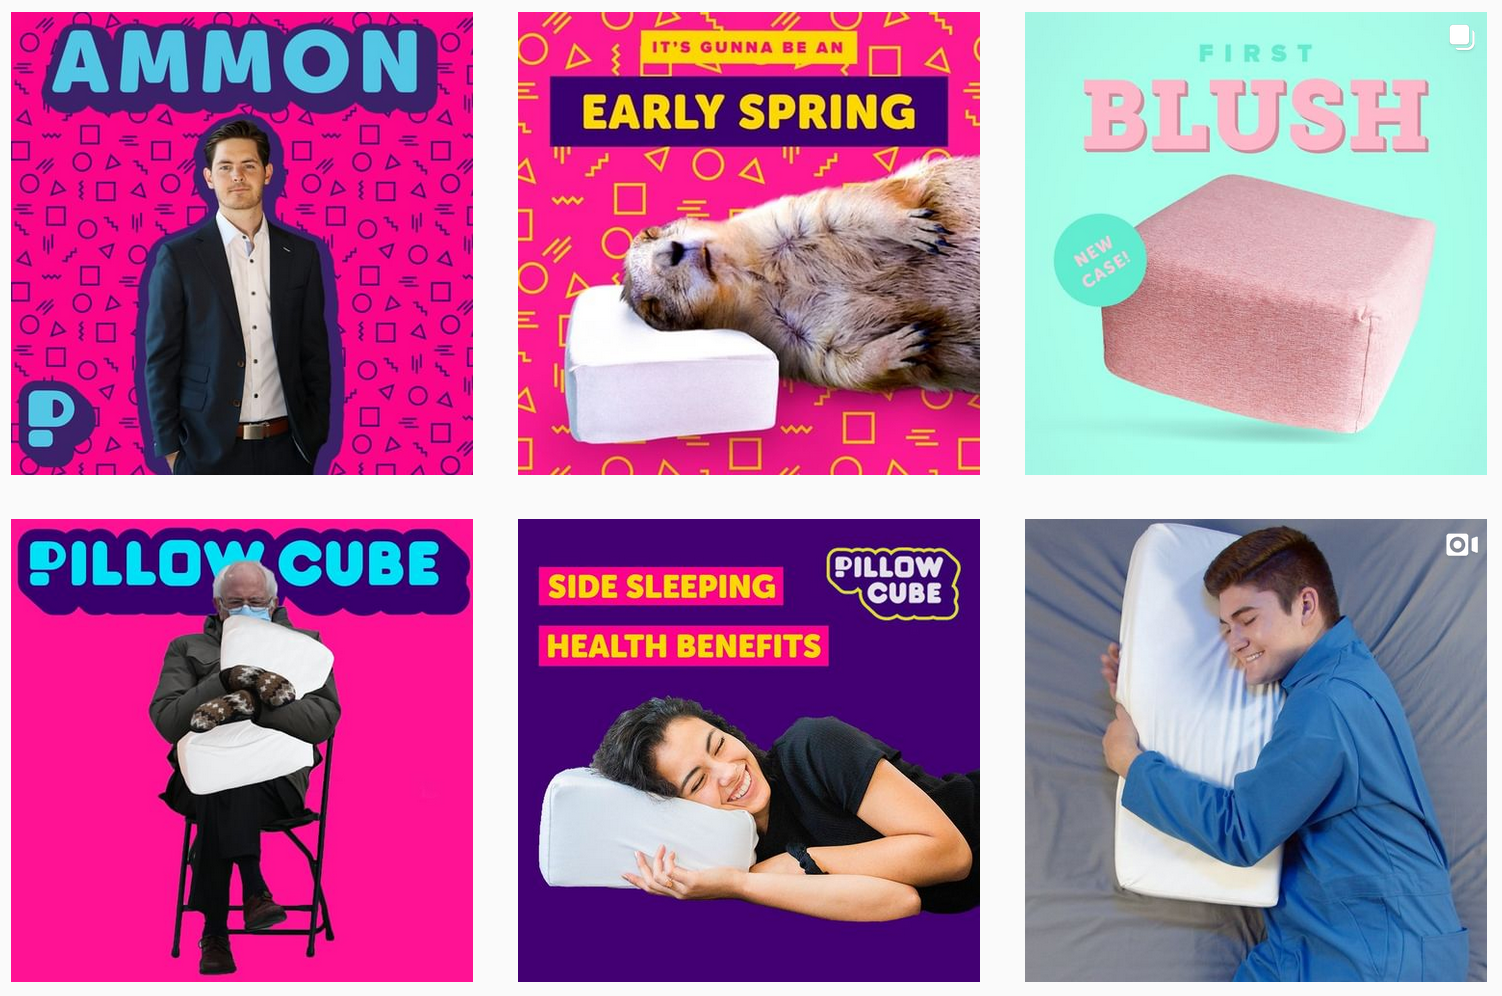 Pillow Cube | Instagram Image Gallery | Wellness Brands Featured on Afluencer